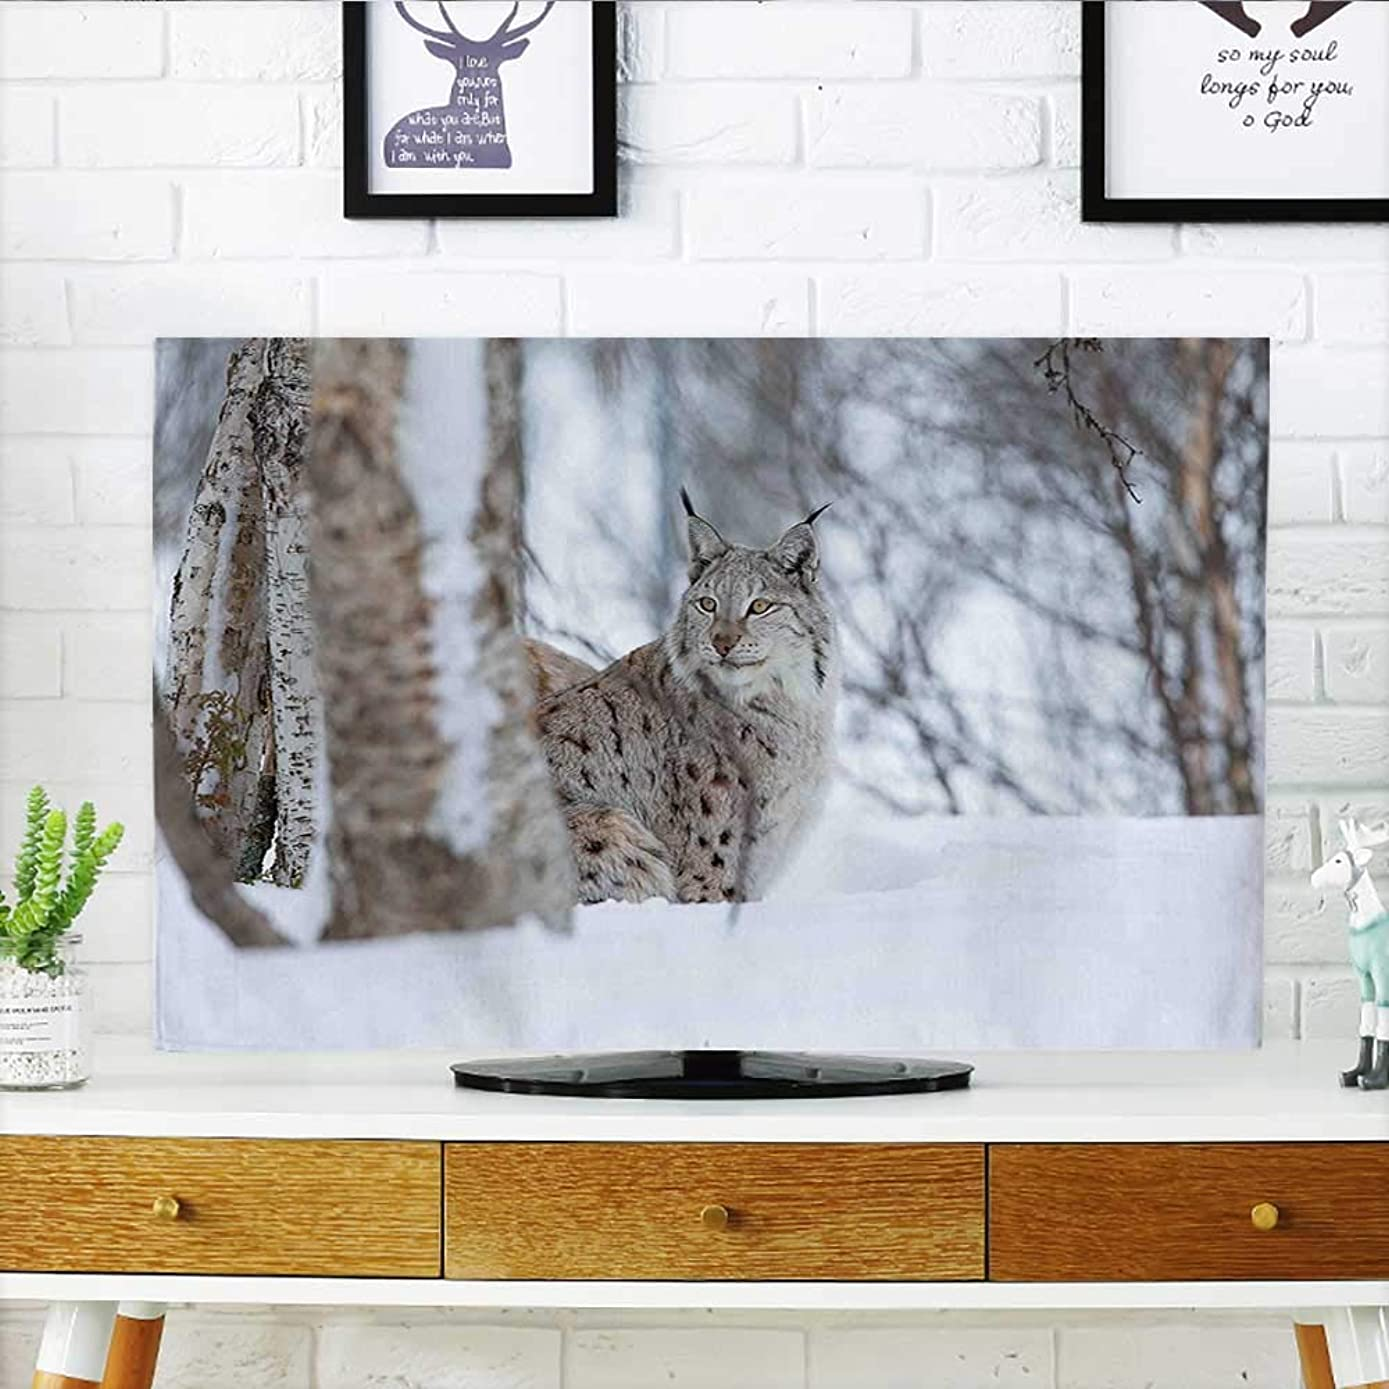 Auraisehome Cord Cover for Wall Mounted tv Lynx Snowy Cold Forest Norway Nordic Country Wildlife Apex Predator Light Brown White Cover Mounted tv W20 x H40 INCH/TV 40